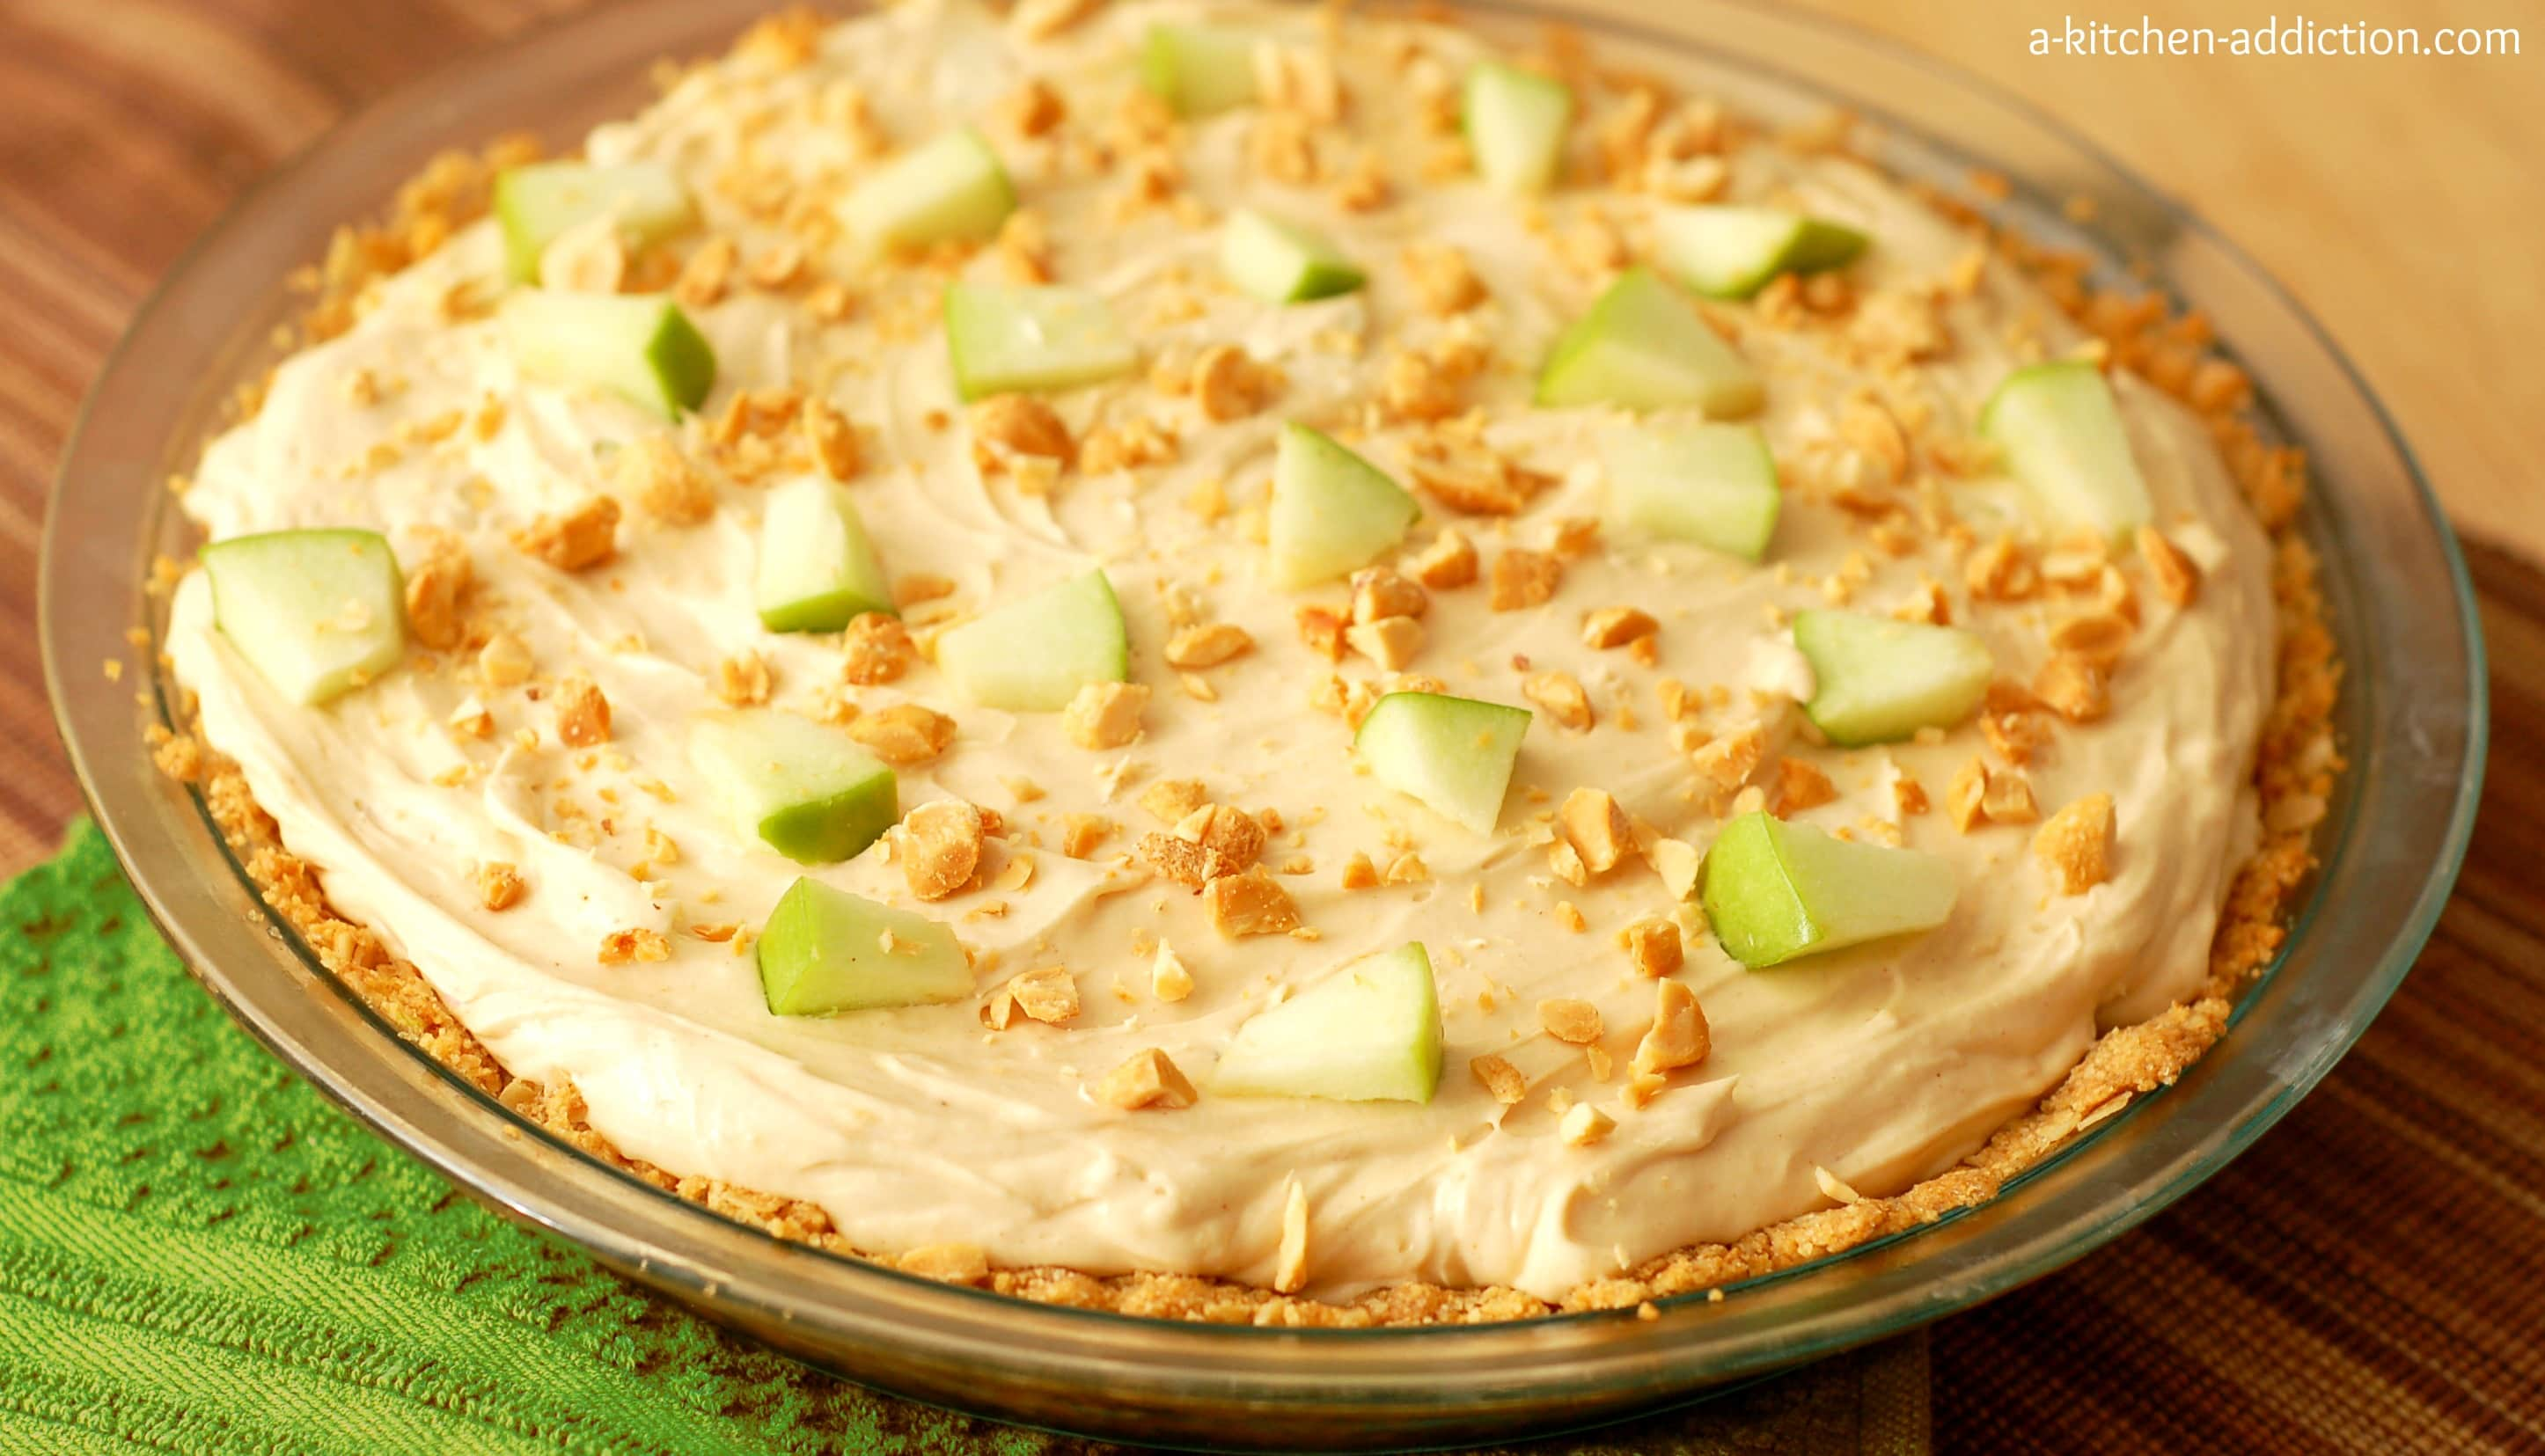 Peanut Butter & Apple Oatmeal Cookie Cheesecake - A Kitchen Addiction